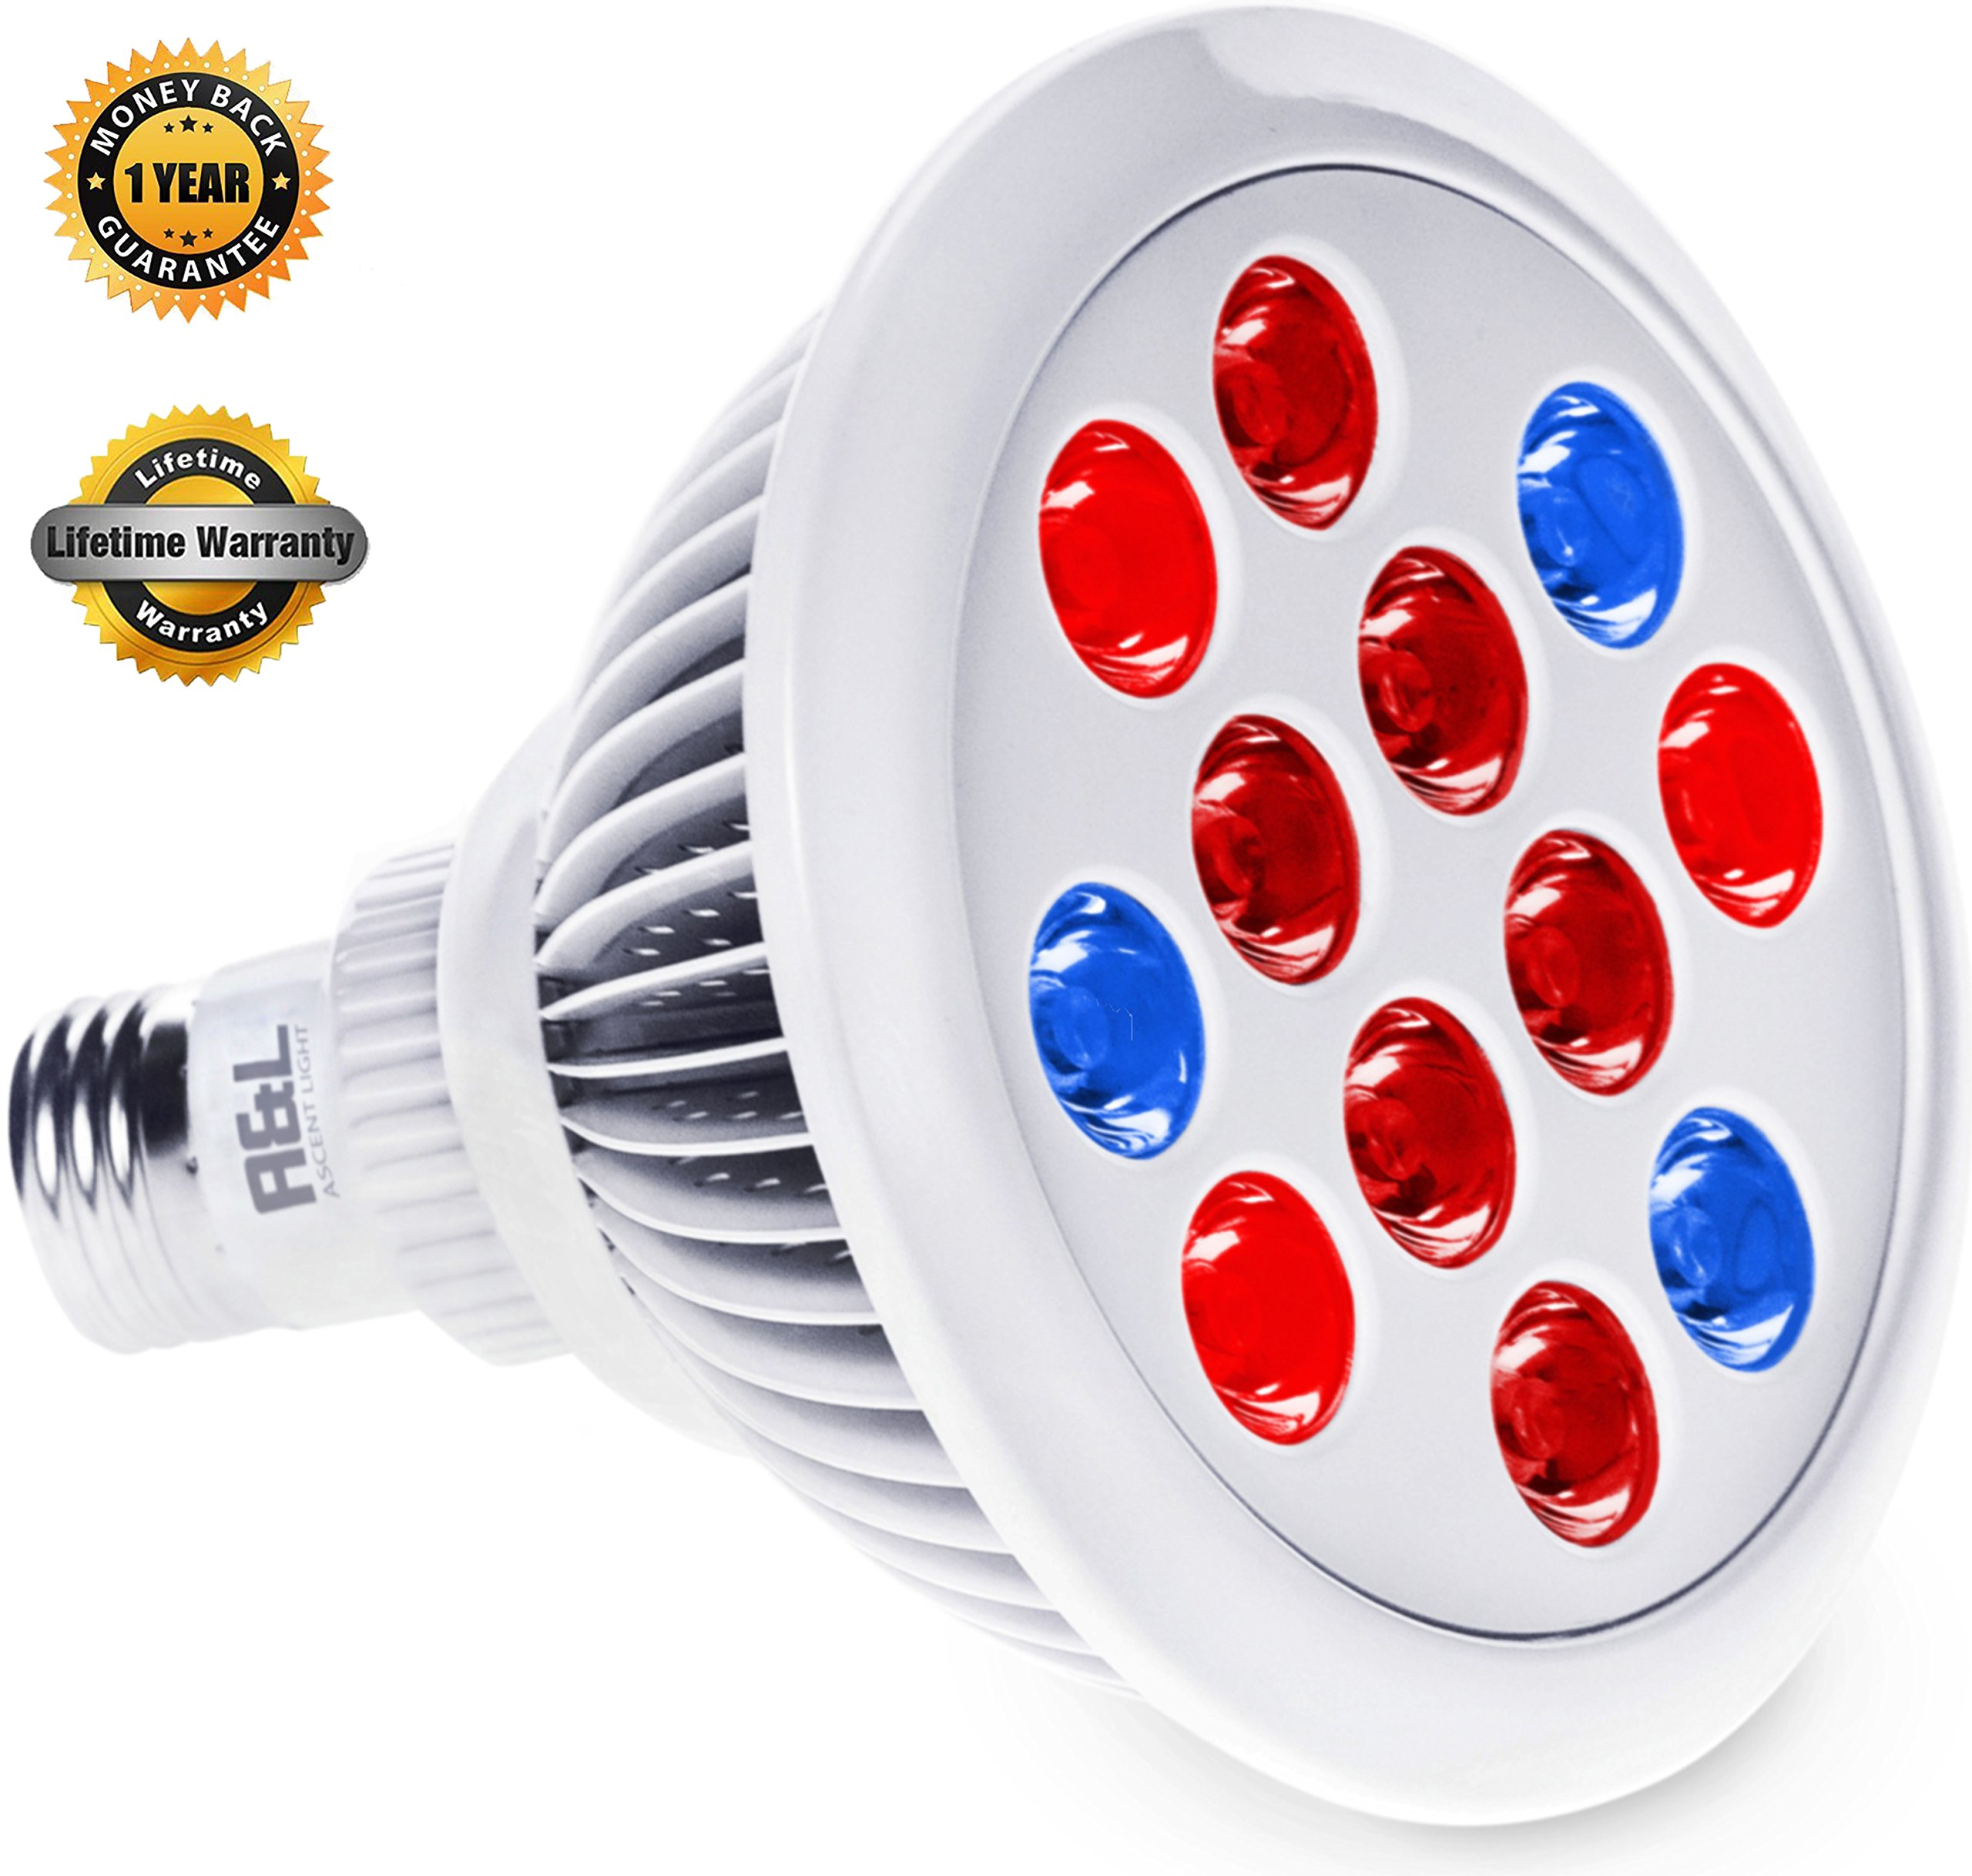 LED Grow Light Bulb   Greenhouse Hydroponics For Organic Indoor Gardening    Lifespan Warranty, High Luminosity, Wide Coverage   Let Your Plant To Touch  The ...